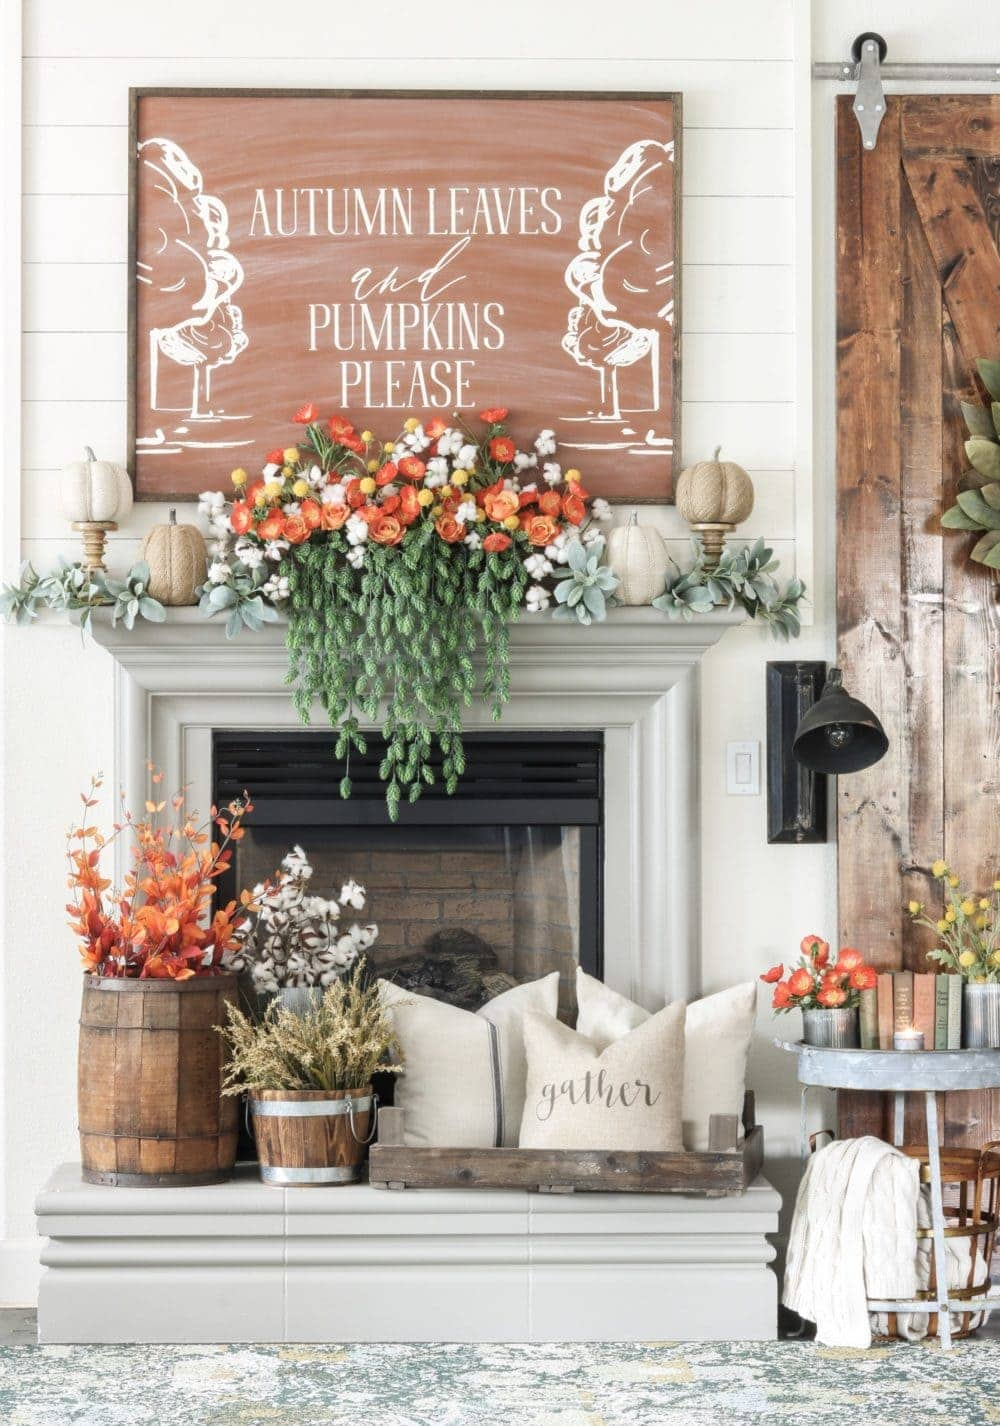 Fall mantel ideas using orange florals, wooden barrels, and cozy pillows centered under a giant piece of artwork